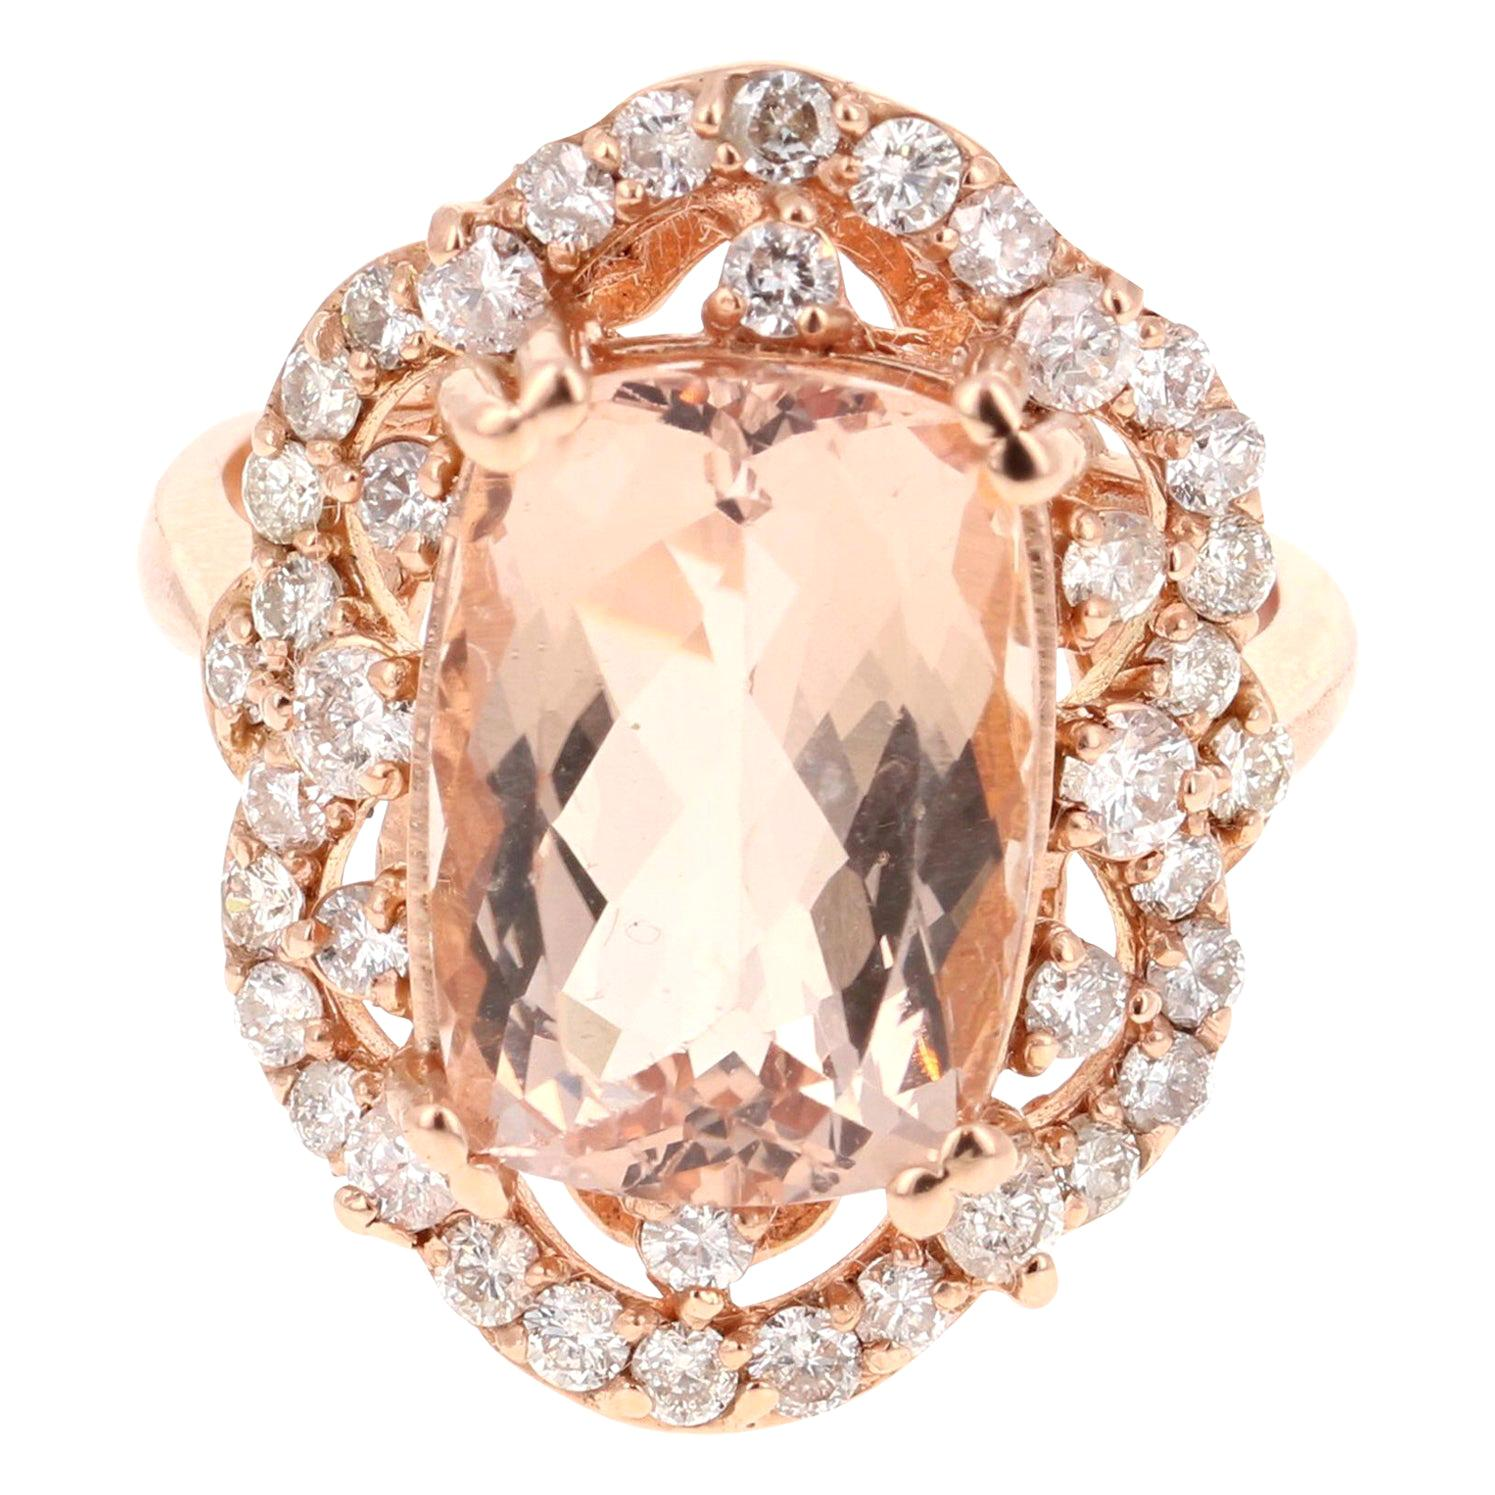 7.13 Carat Morganite Diamond 14 Karat Rose Gold Cocktail Ring